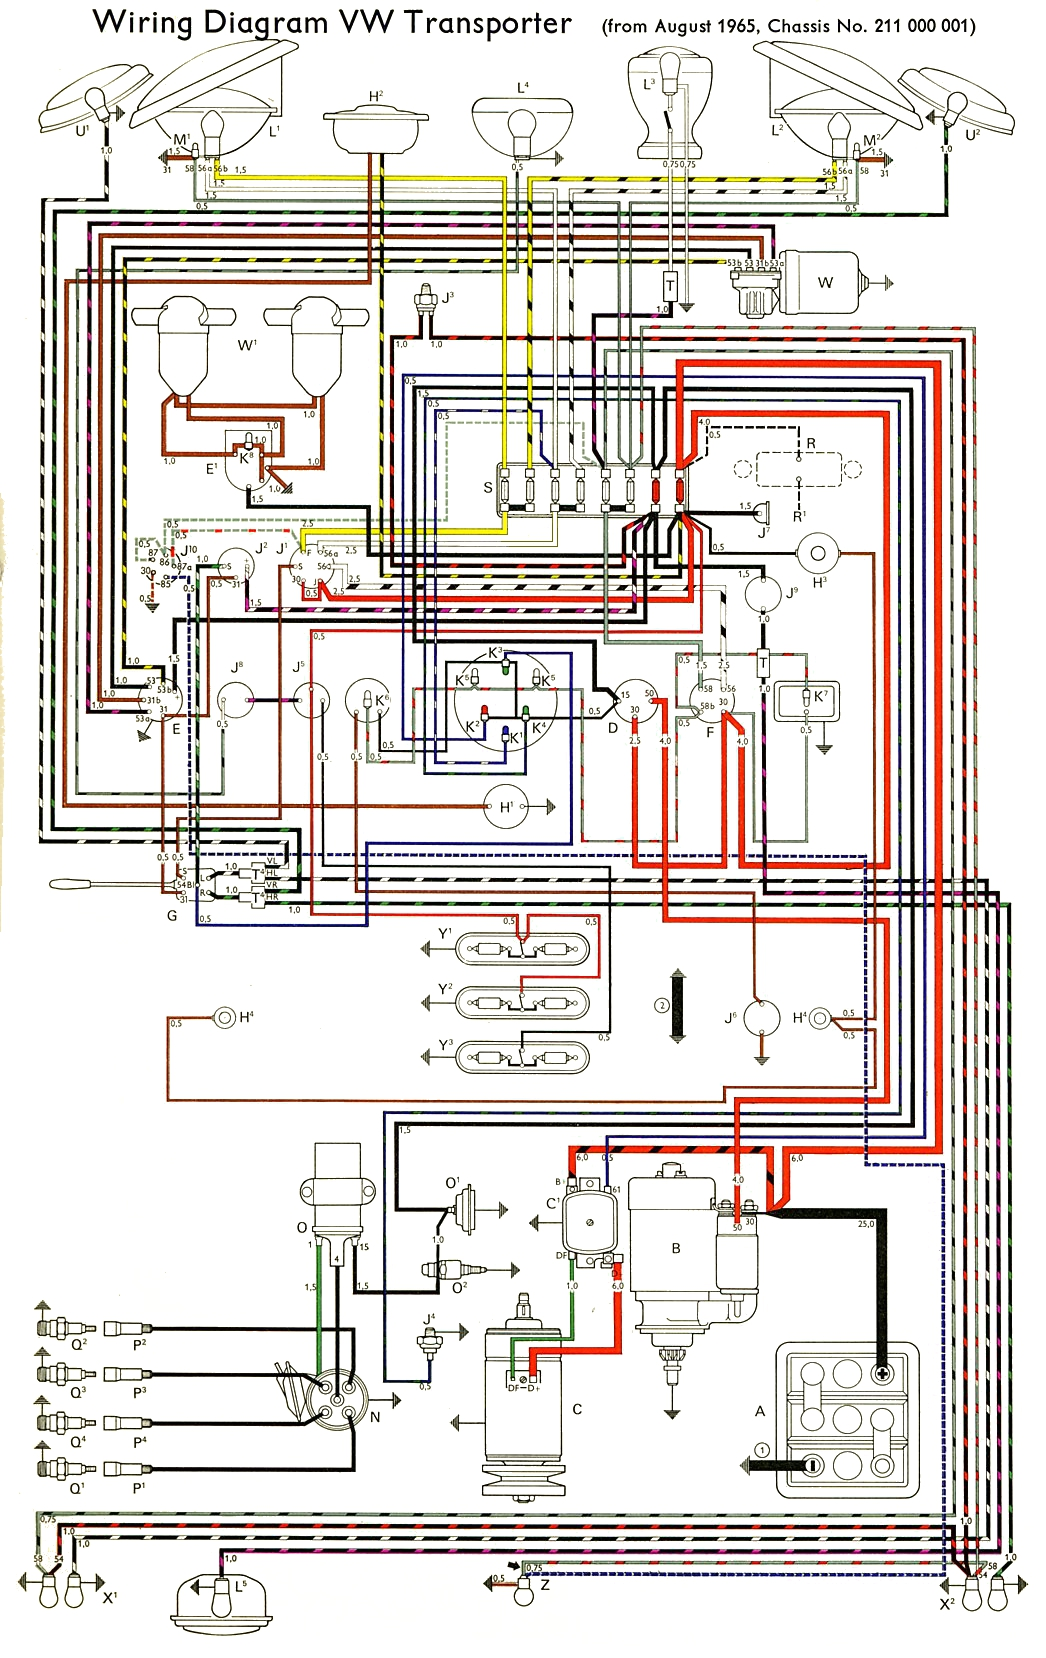 vw t4 stereo wiring diagram wiring diagrams and schematics 2002 vw beetle car stereo system wiring diagram ross tech vcds afterrmarket radio problem